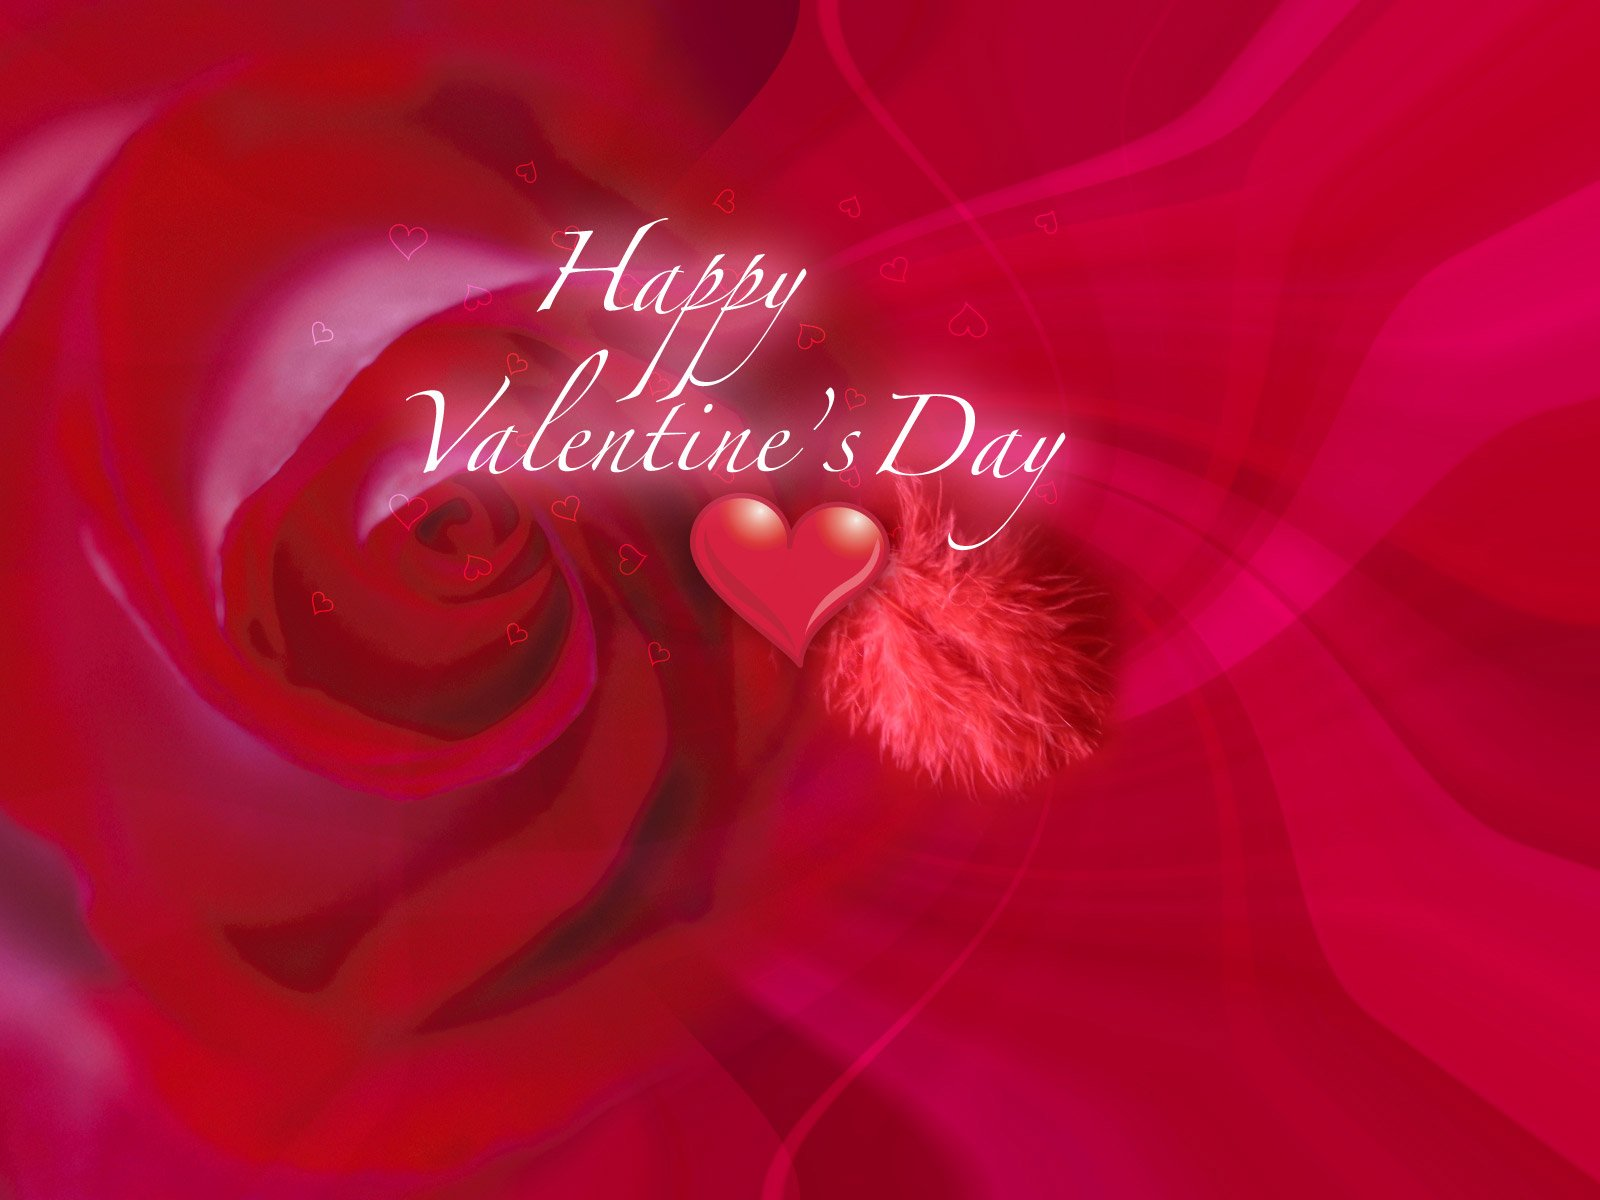 Love Wallpapers happy valentines day wallpaper 1600x1200